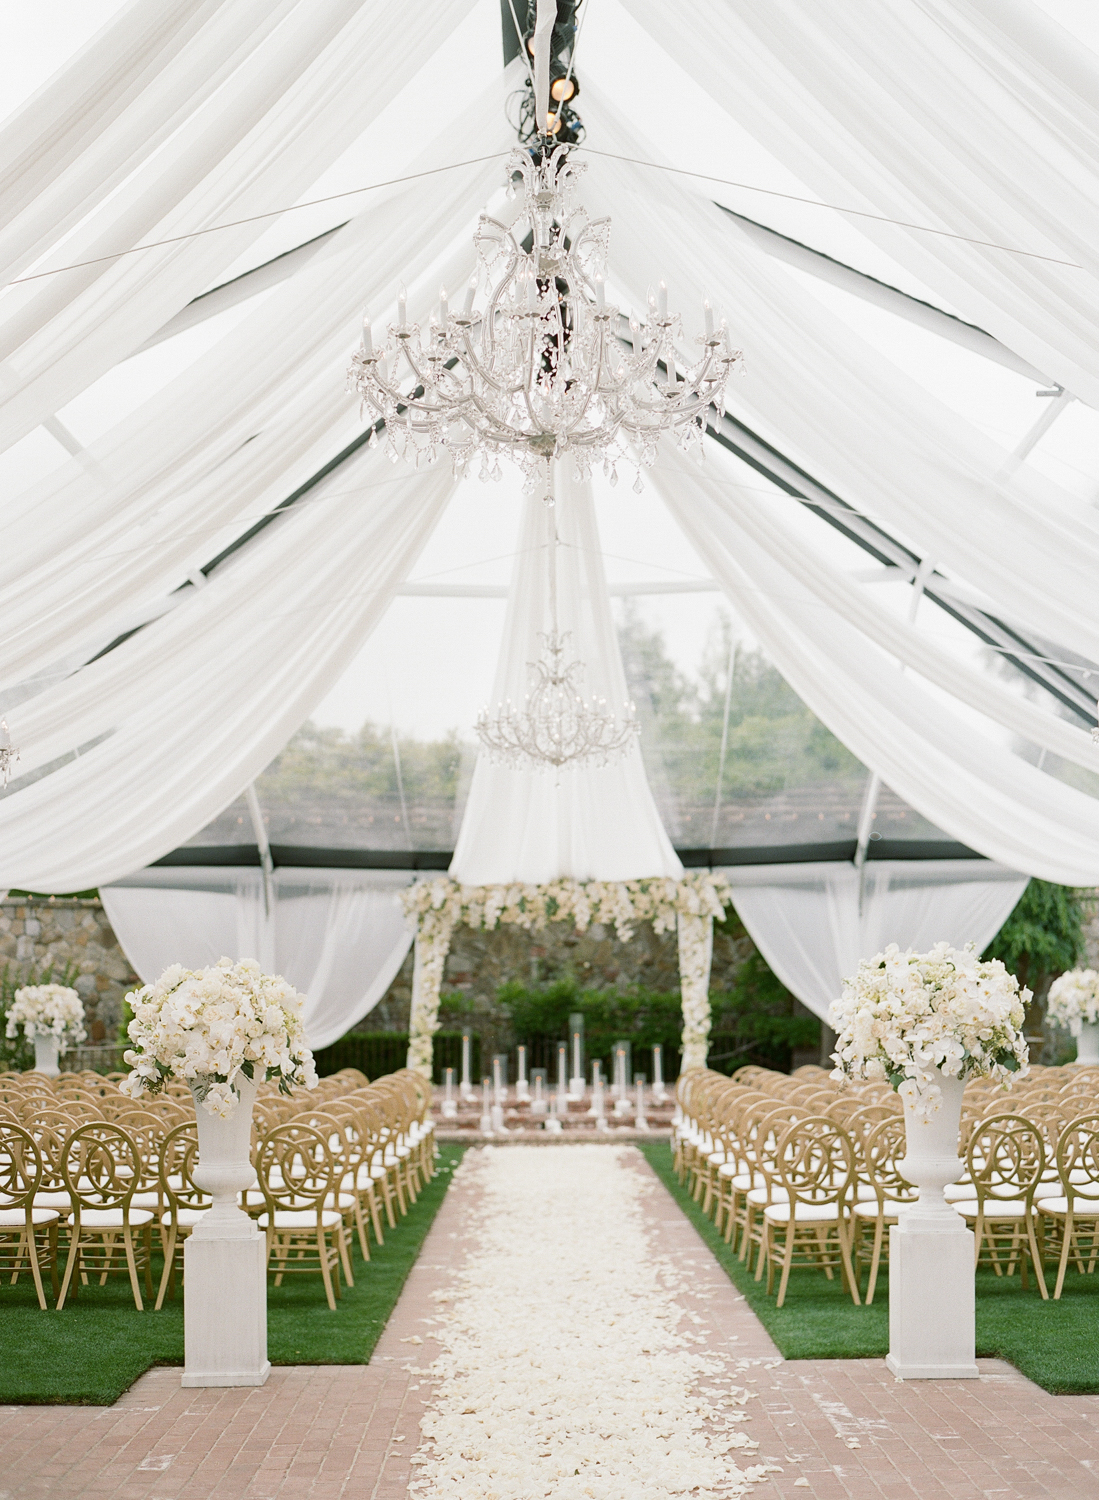 Crystal chandeliers hang from the awning draped tent ceremony space decorated with white florals; Sylvie Gil Photography